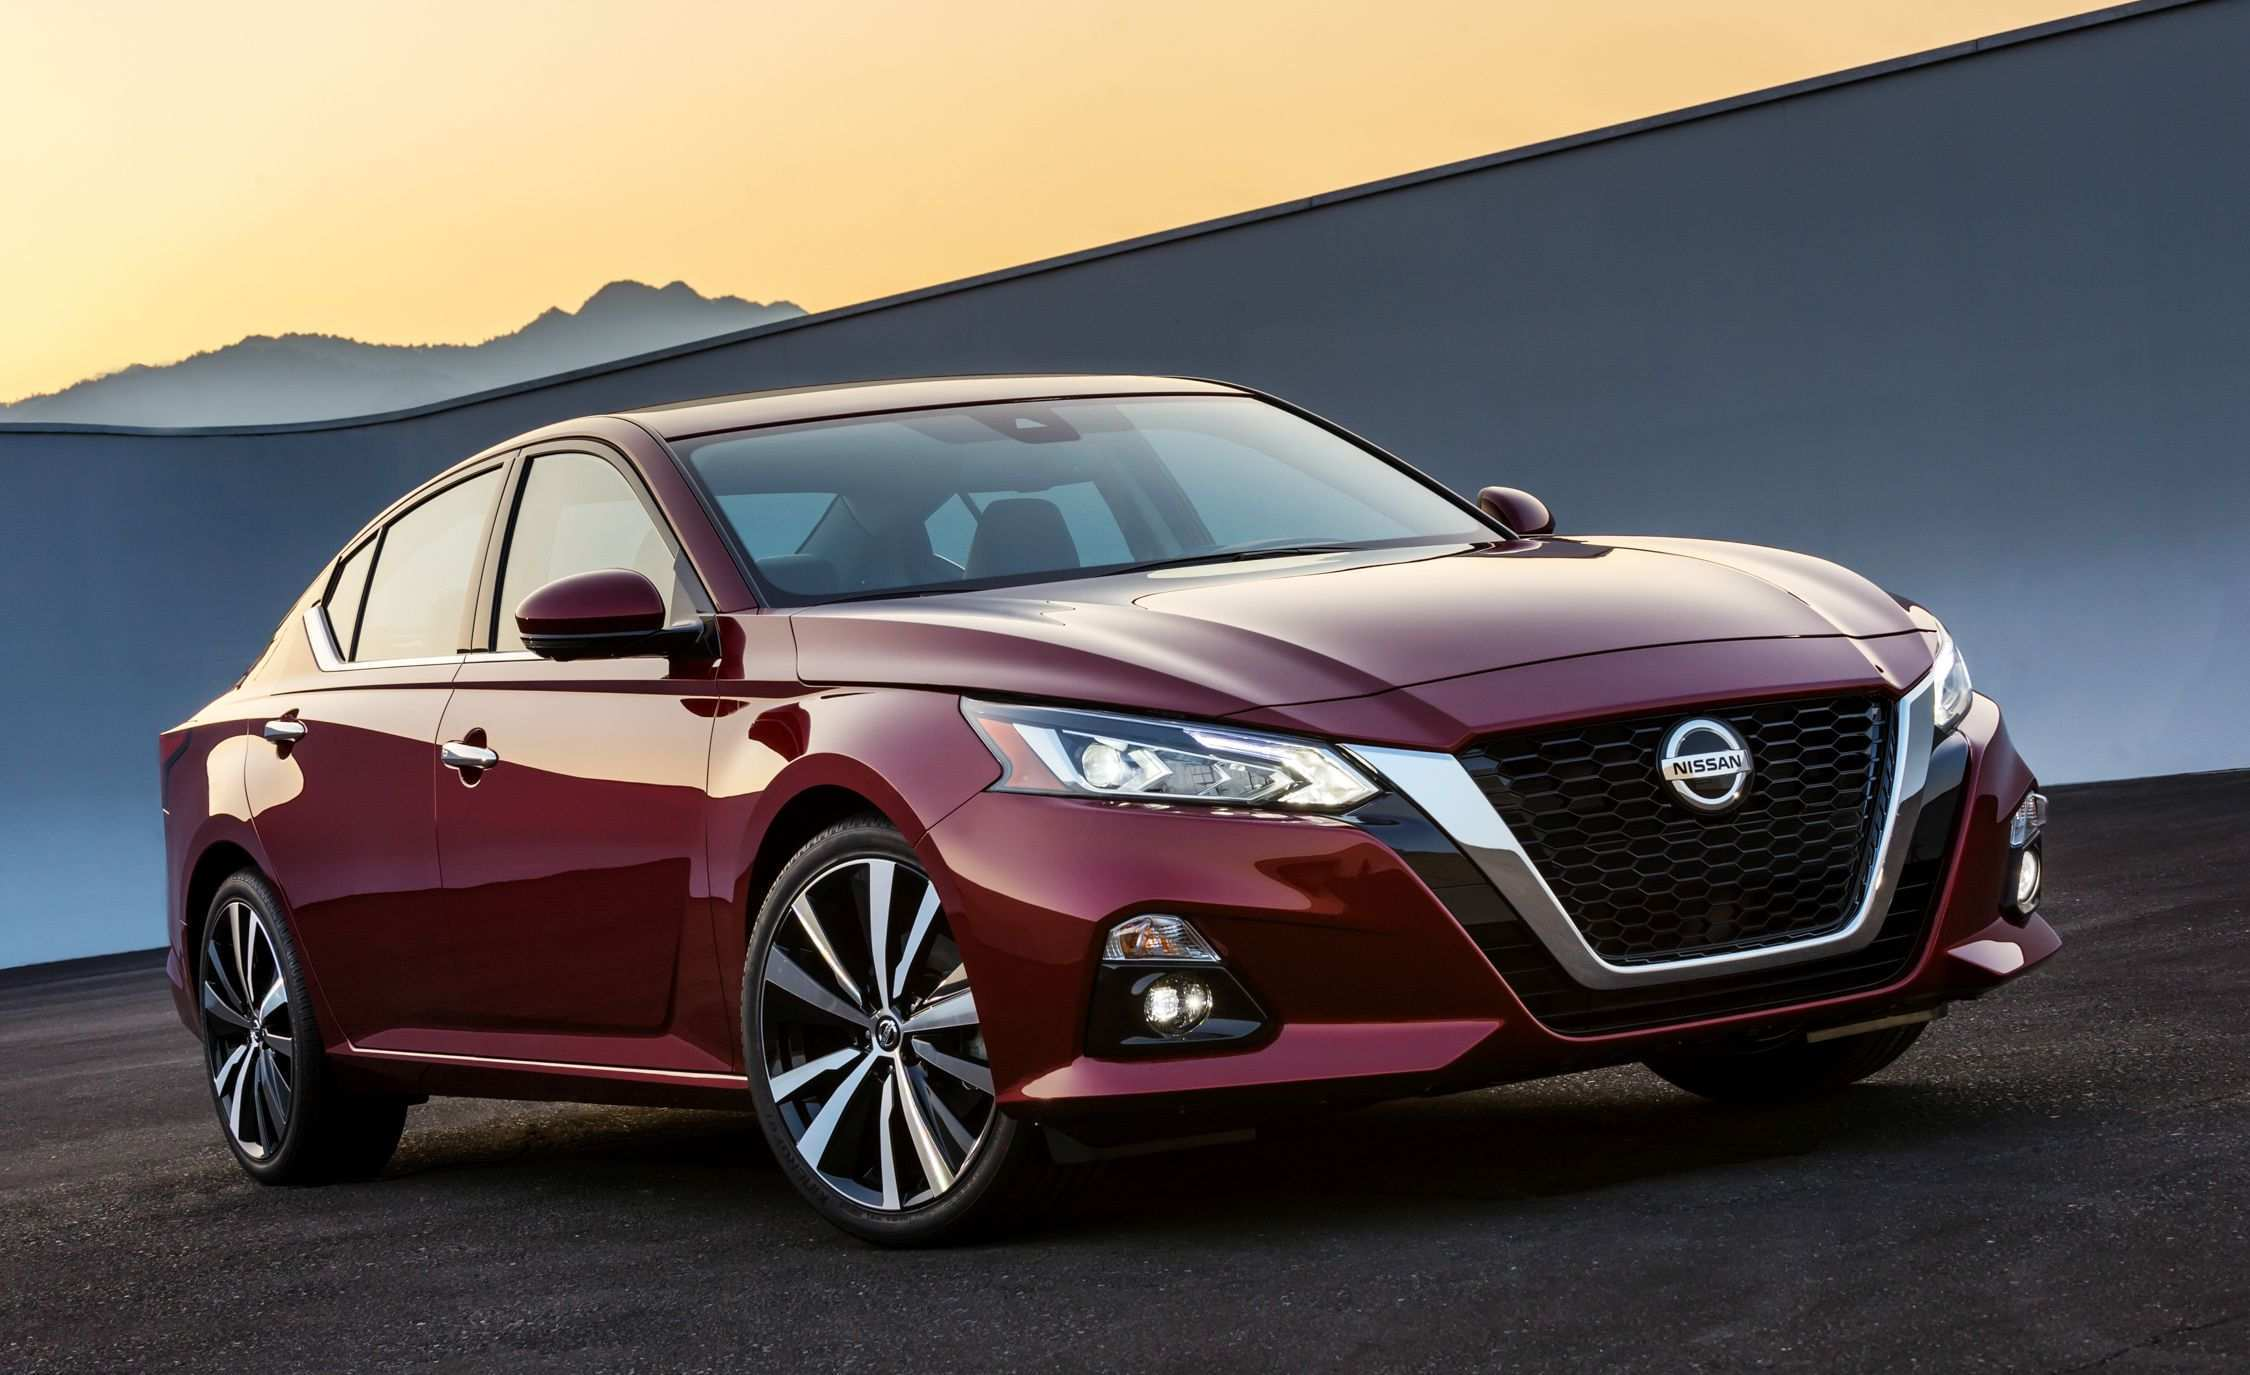 21 New 2019 Nissan Vehicles Picture for 2019 Nissan Vehicles